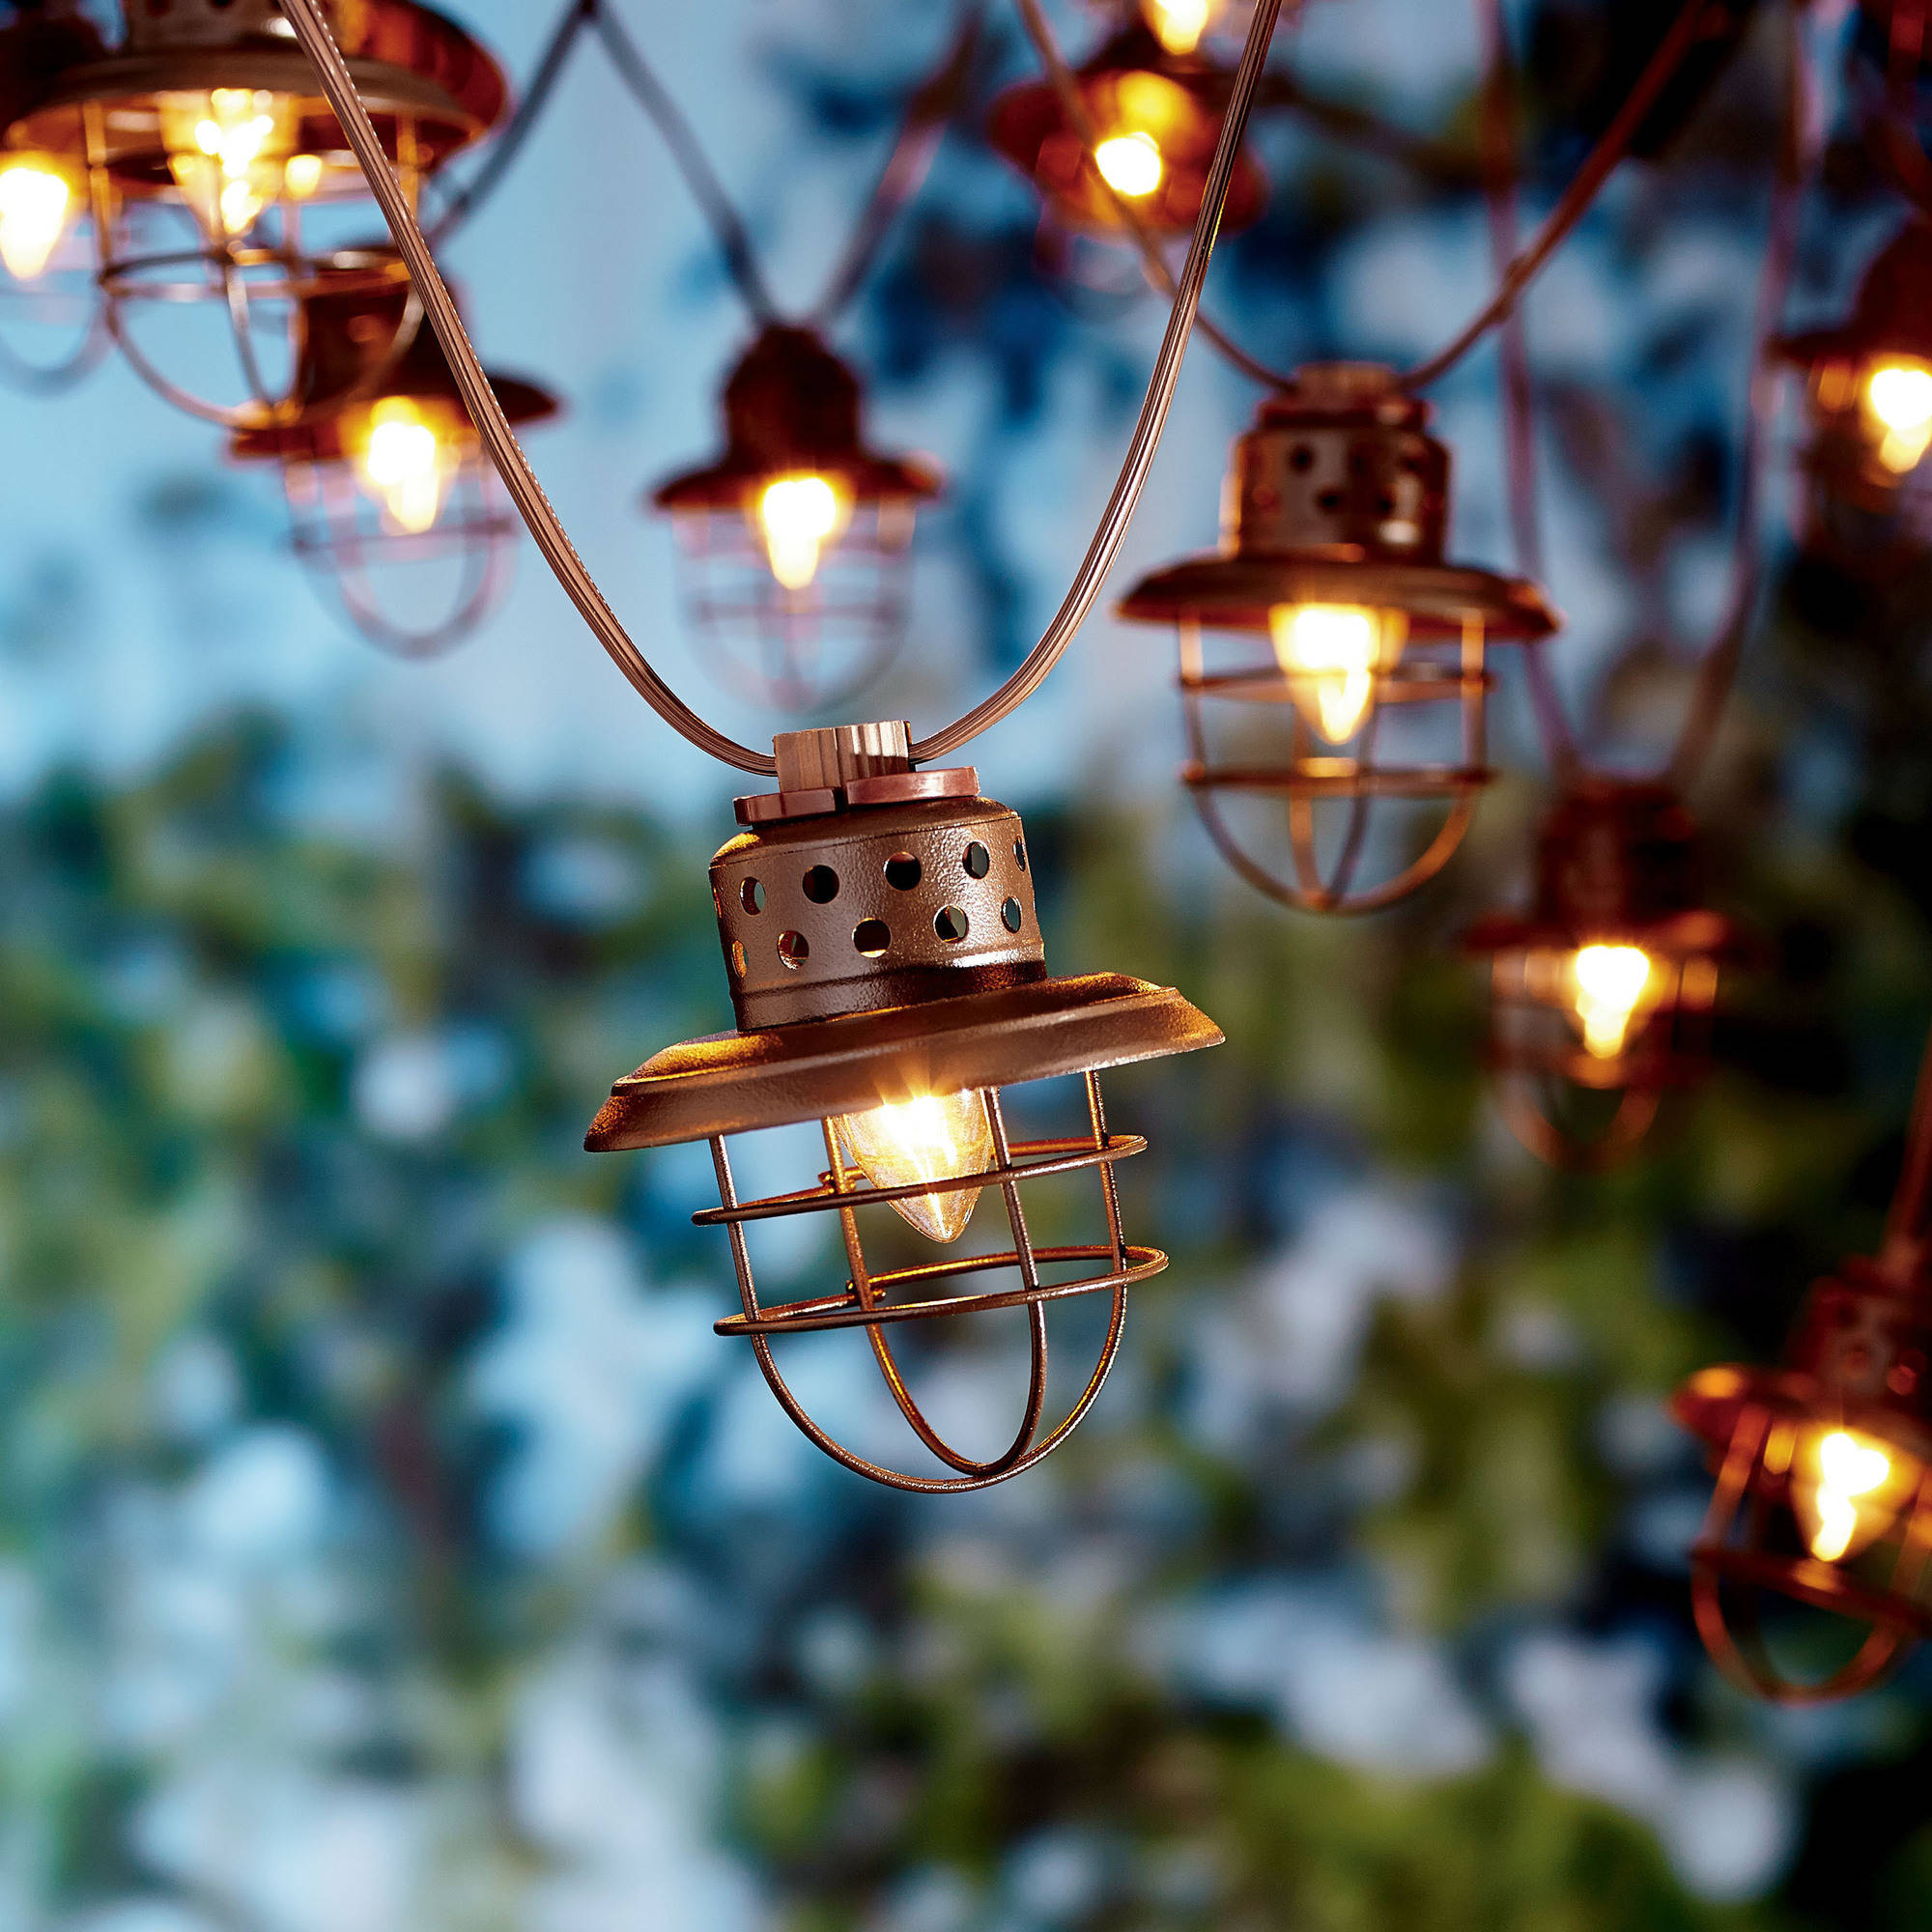 Better Homes And Gardens 10 Count Vintage Cage Lantern String Lights    Walmart.com